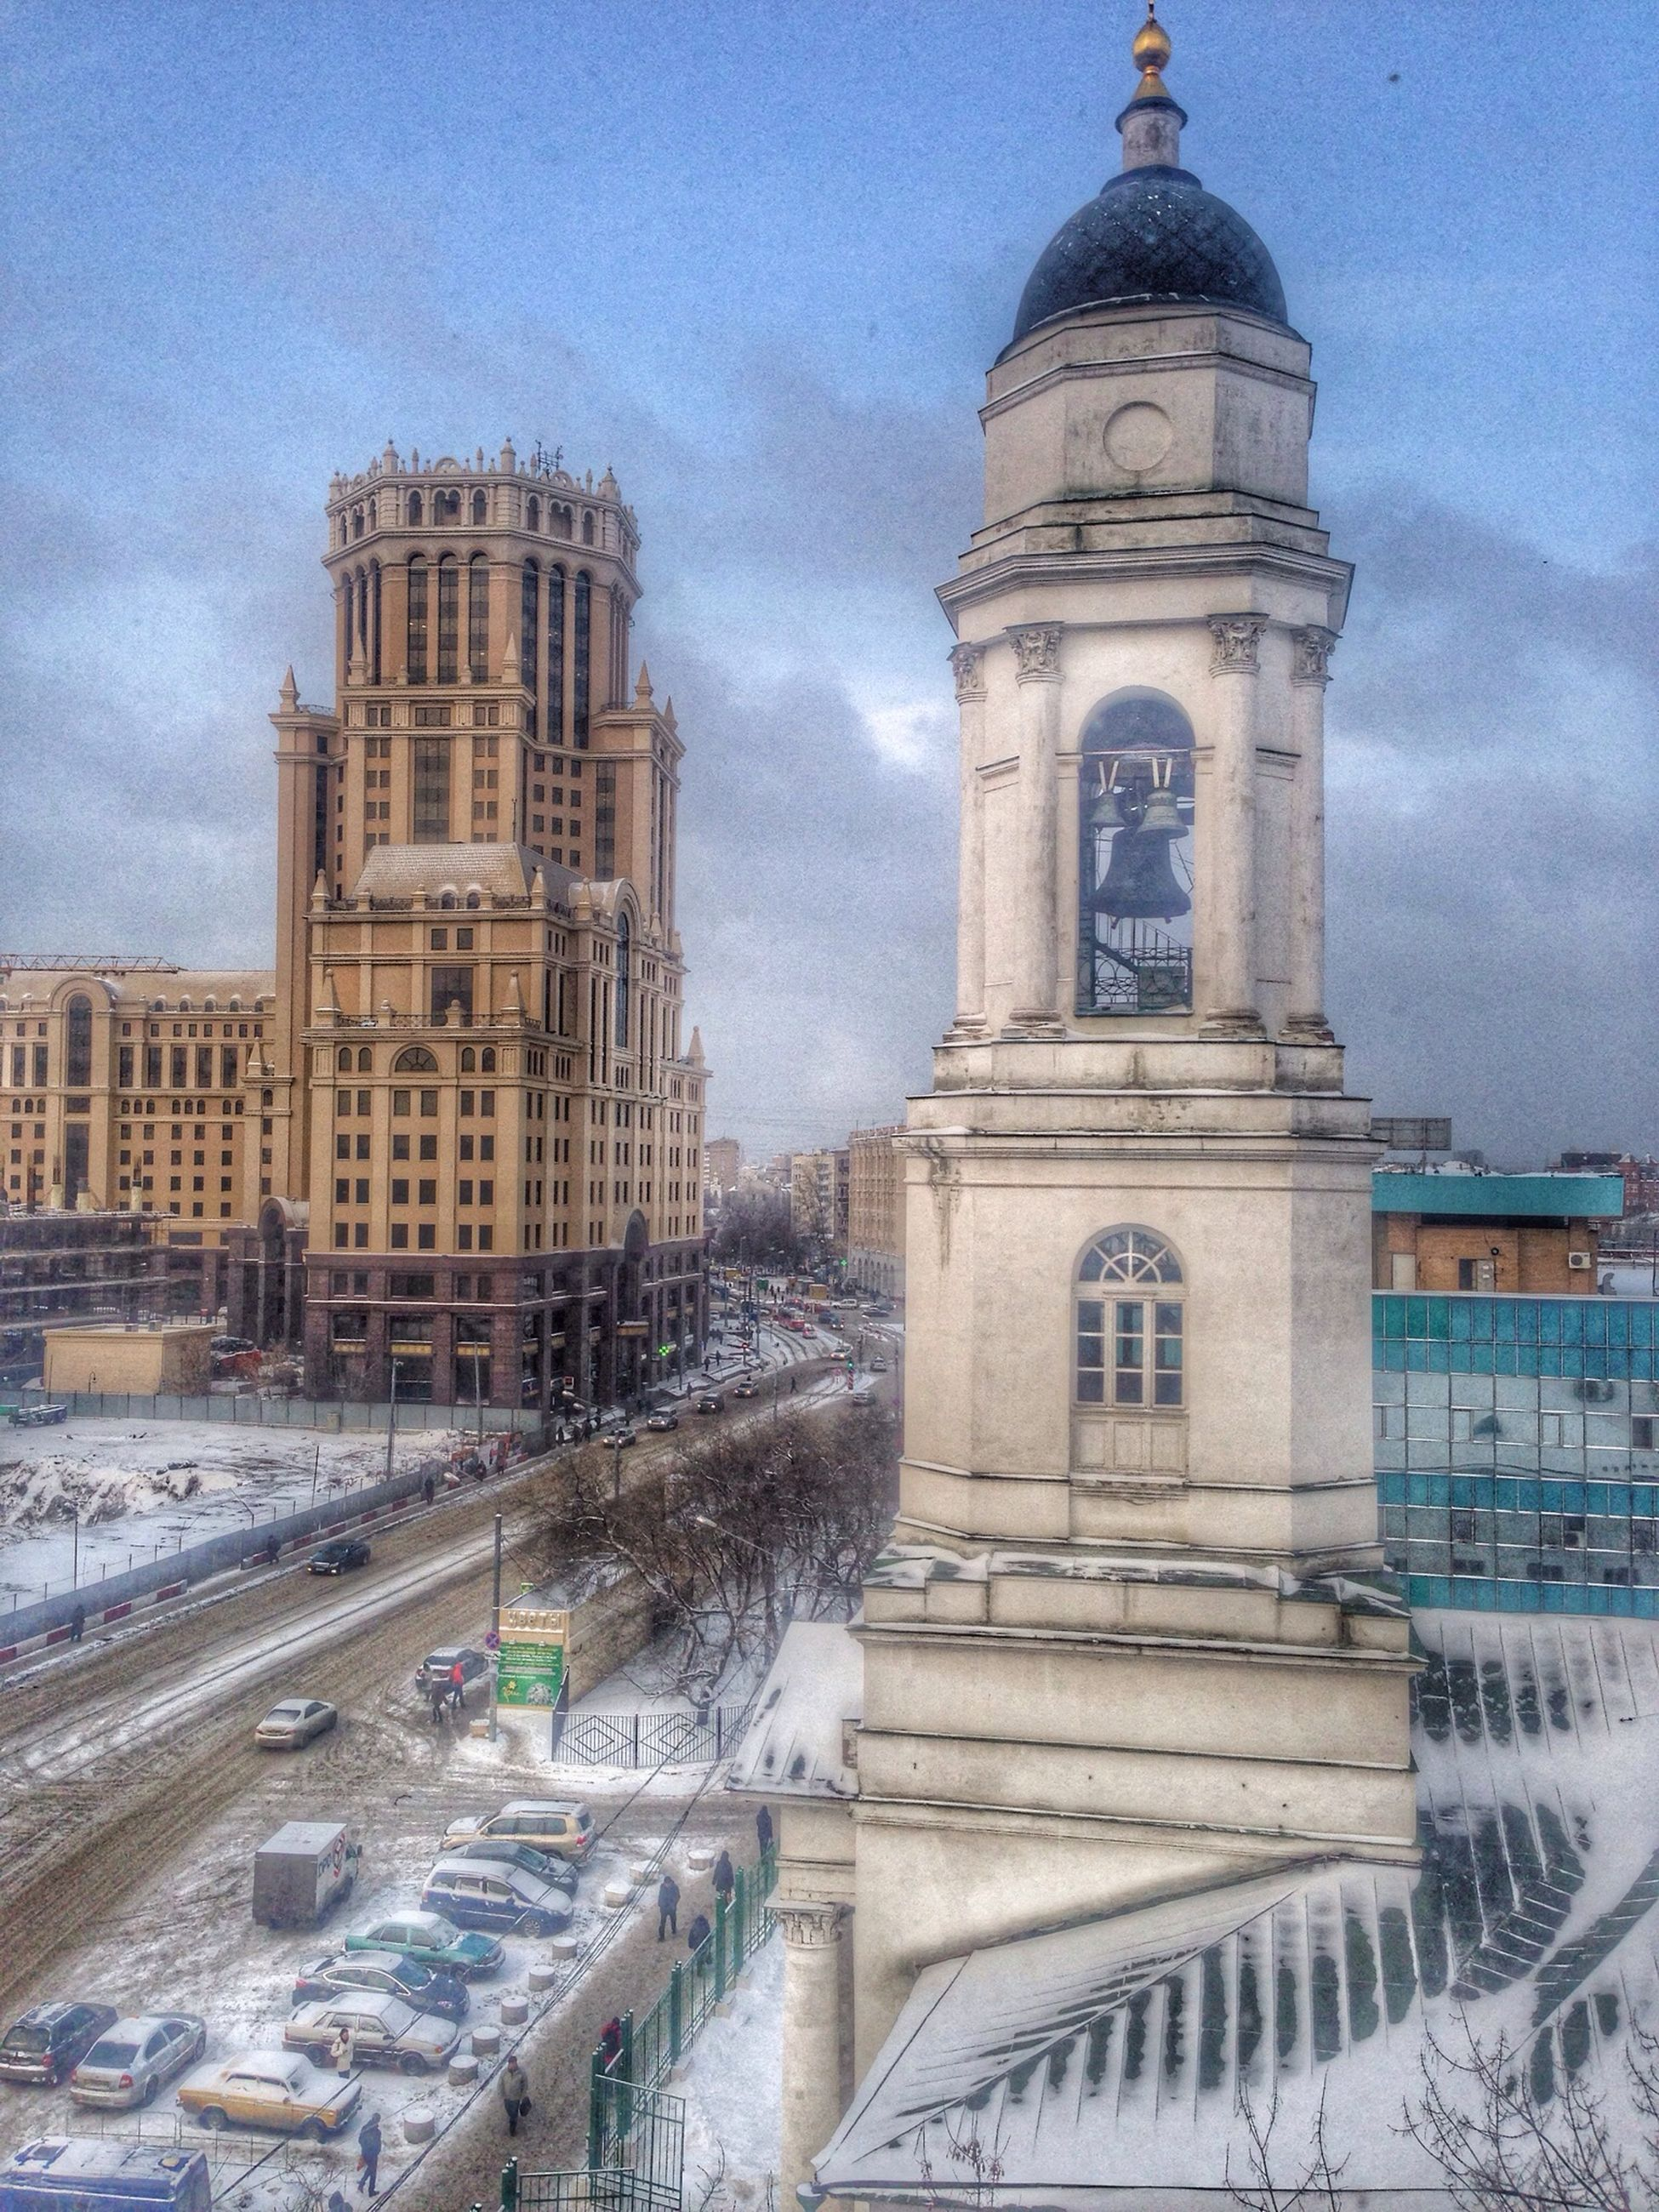 building exterior, architecture, built structure, winter, cold temperature, snow, sky, church, religion, season, weather, place of worship, city, dome, cloud - sky, travel destinations, water, cathedral